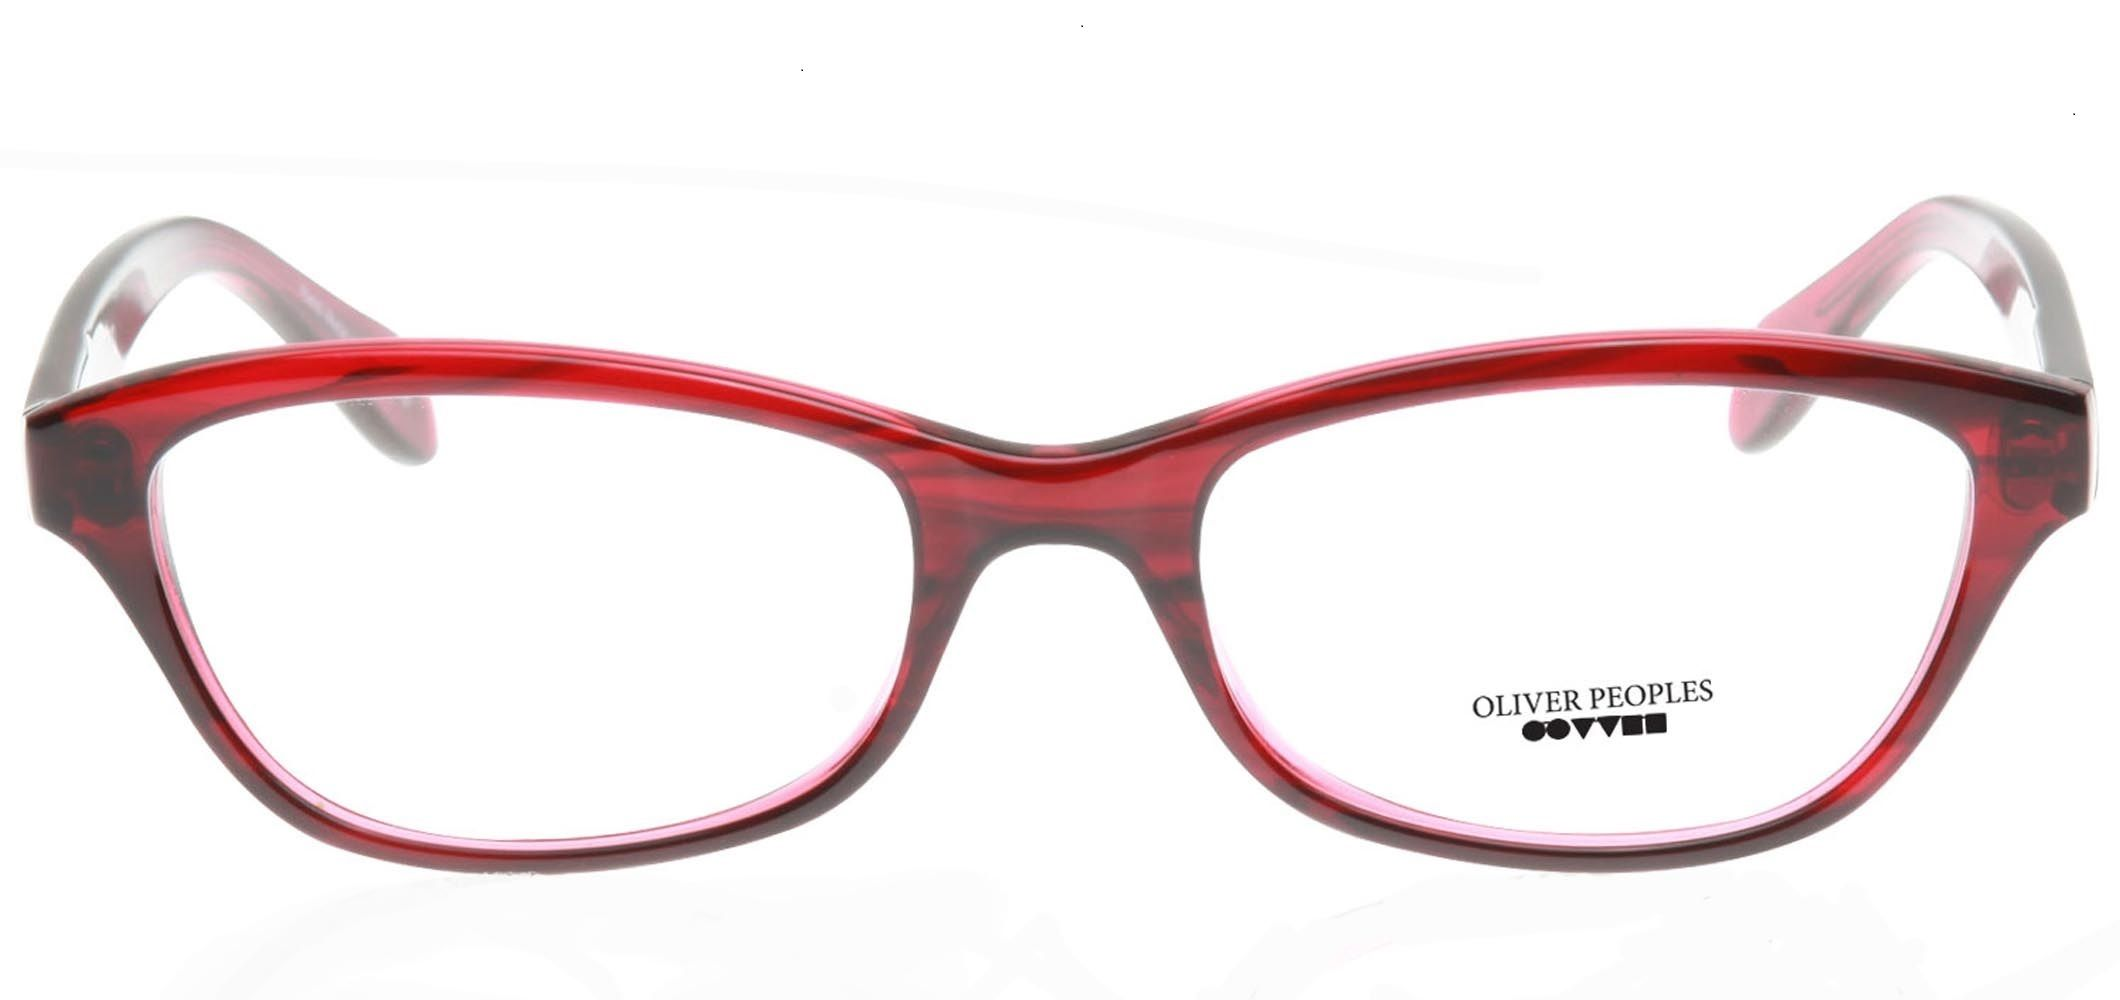 679e5877ee3 Pin by Brosgill Opticians on Oliver Peoples